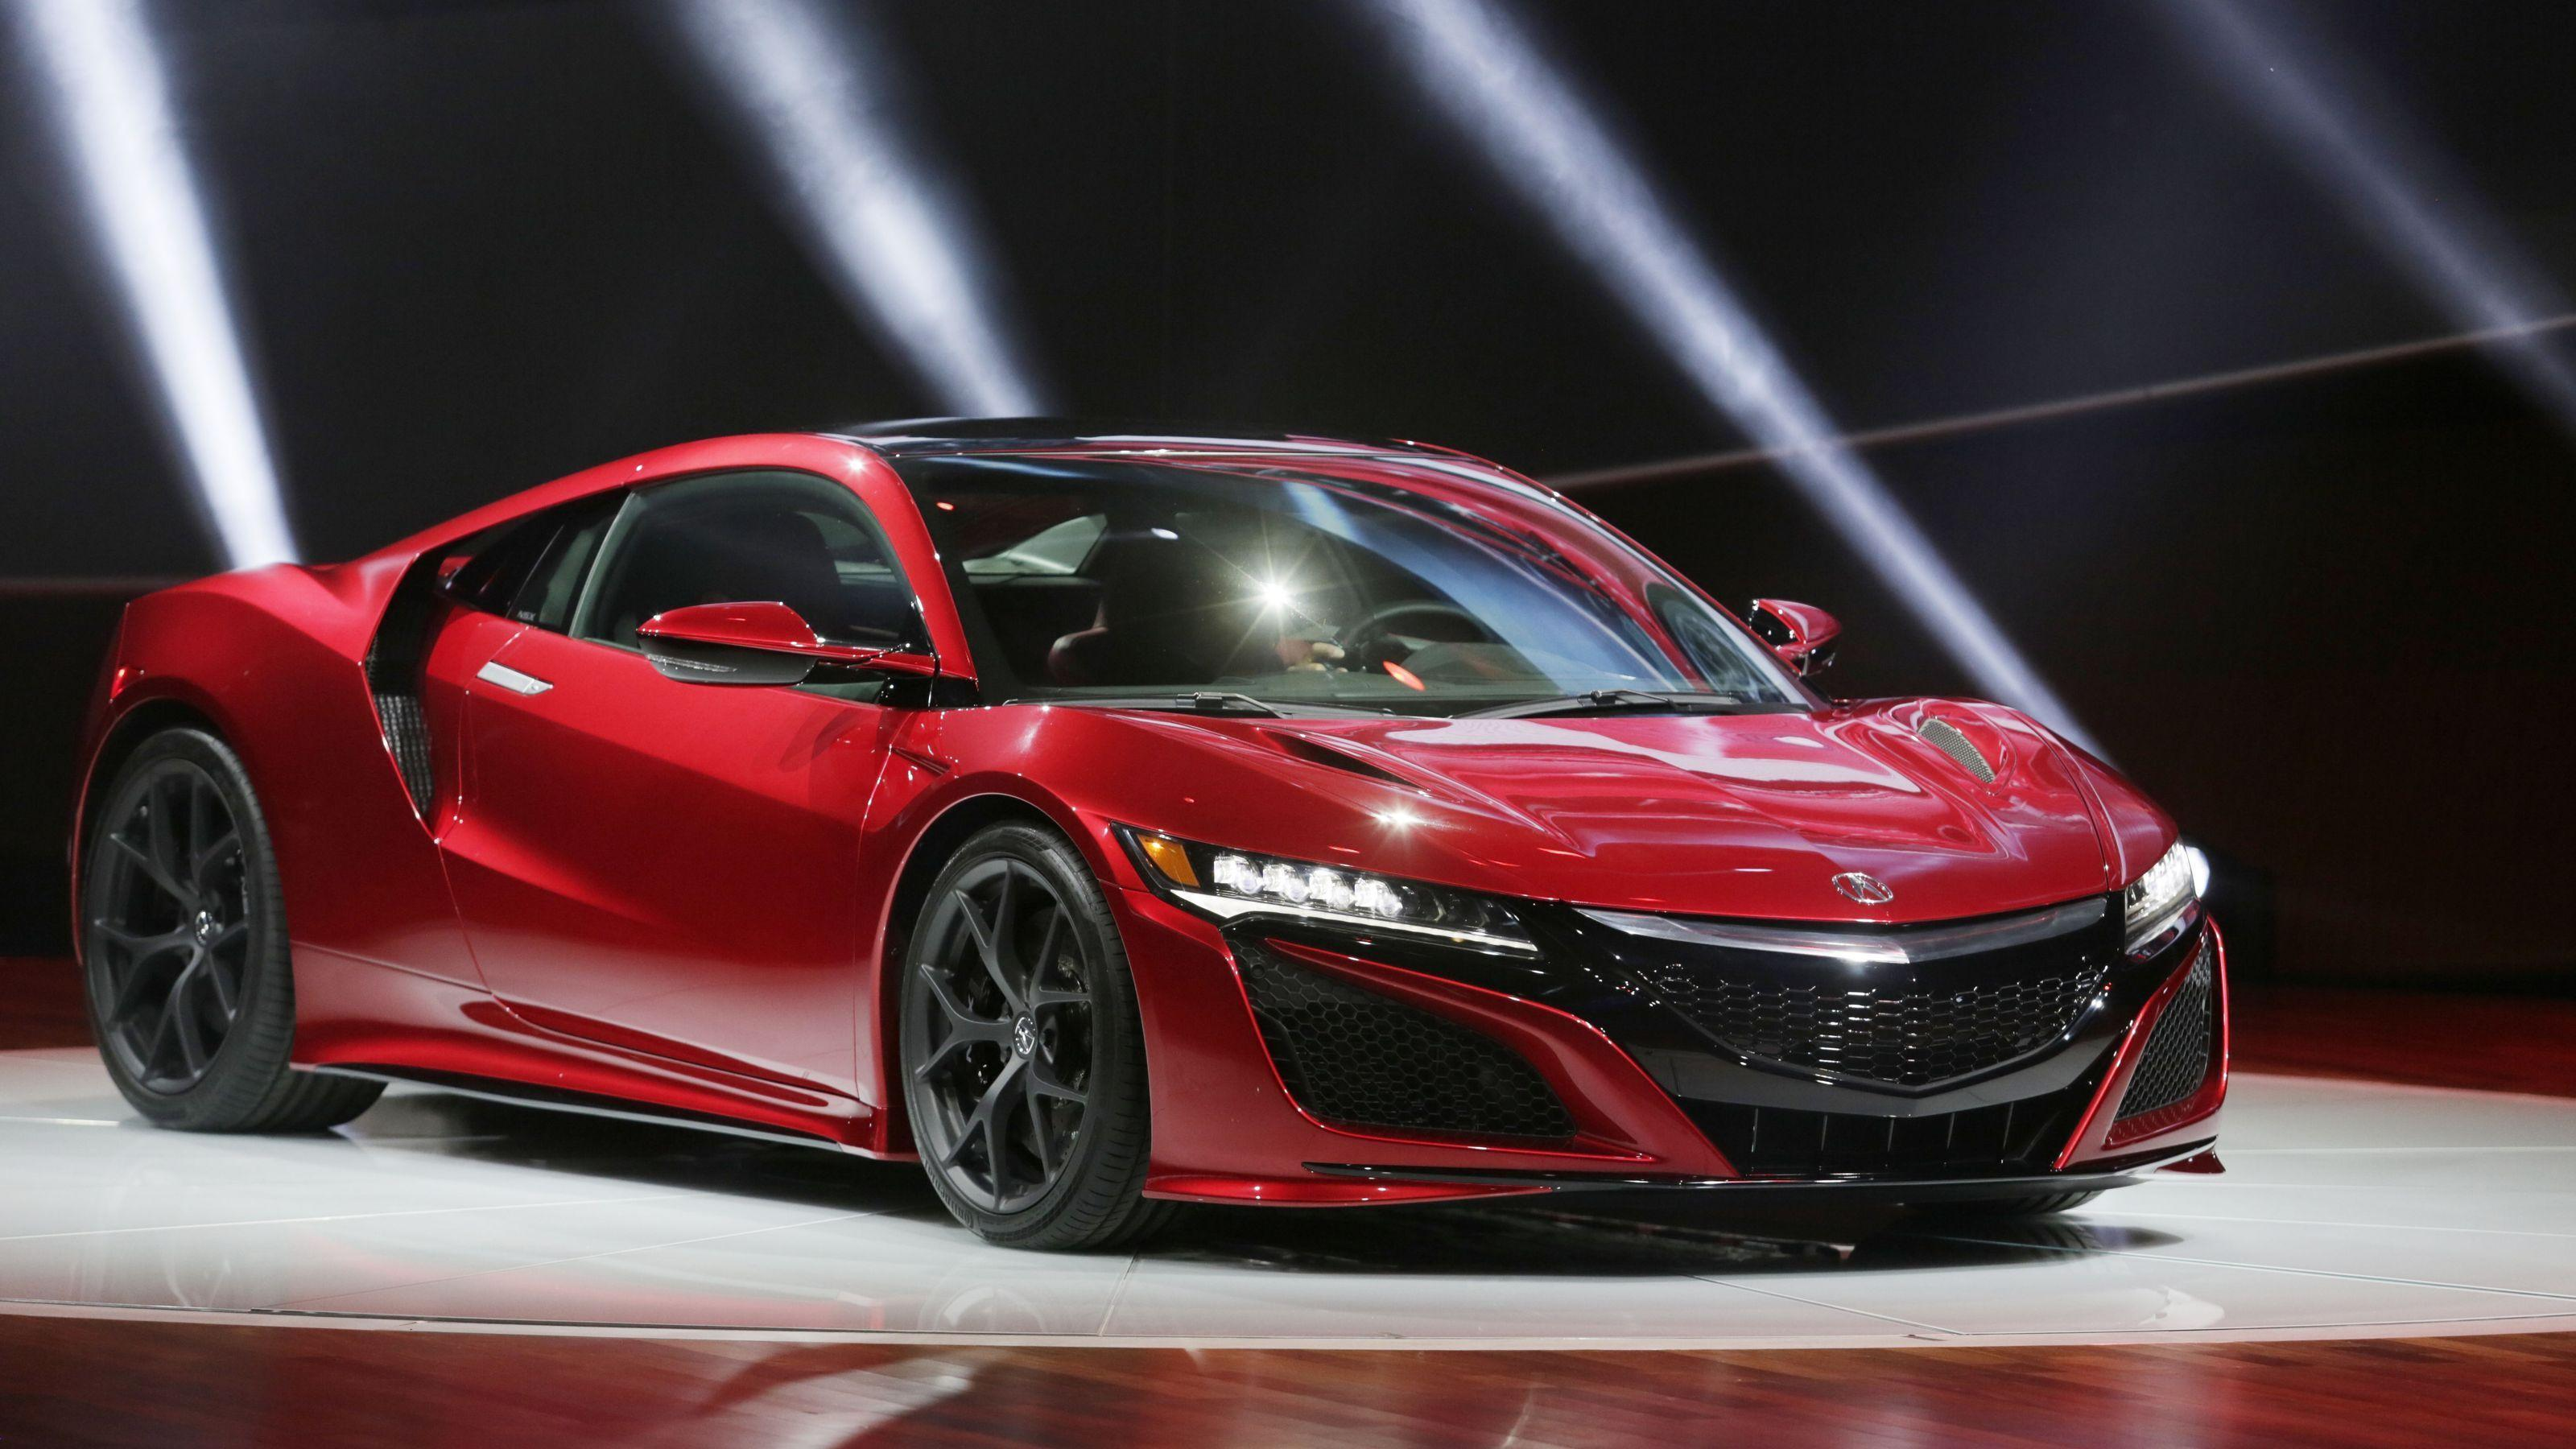 Acura Nsx Wallpapers HD | PixelsTalk.Net